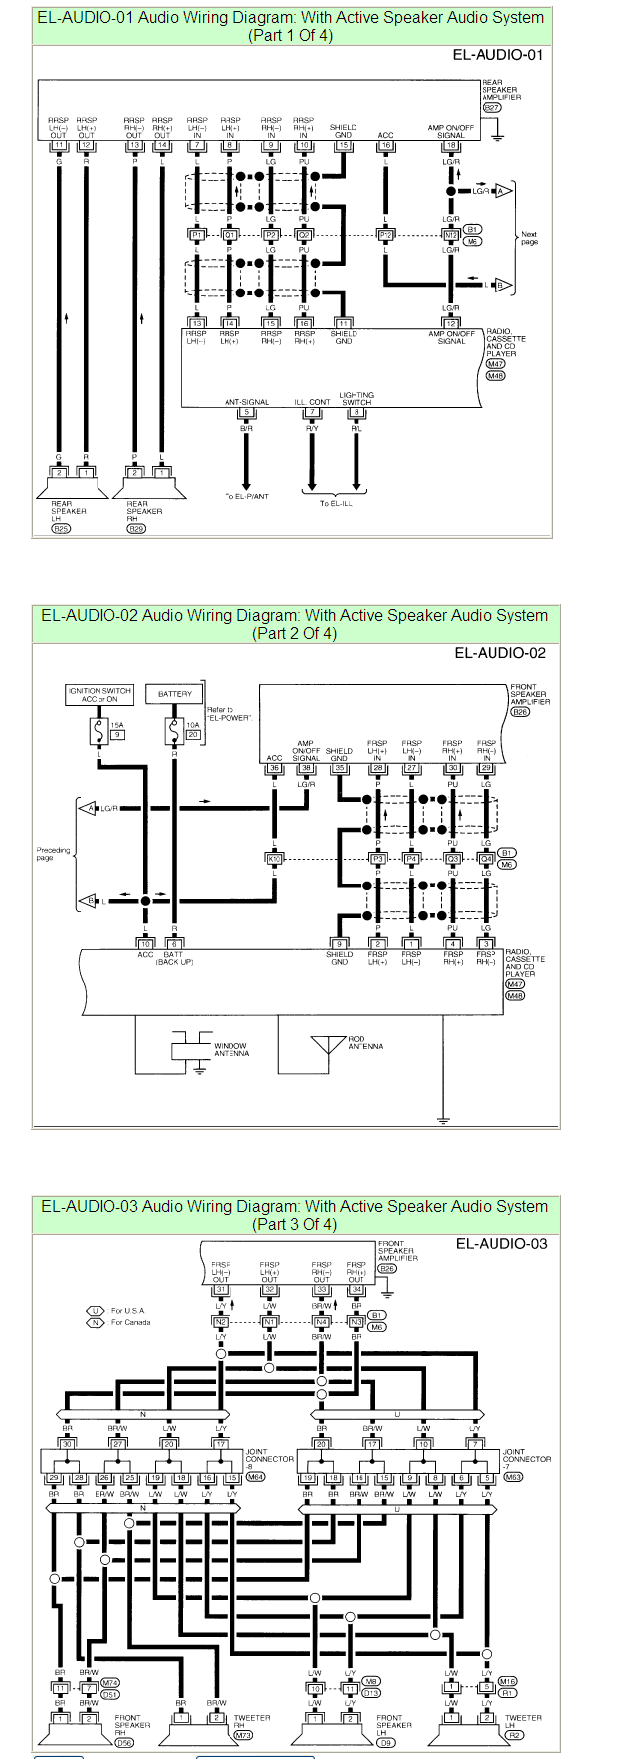 What Are The Color Codes For The 1997 Altima Gxe U0026 39 S Stereo Wiring